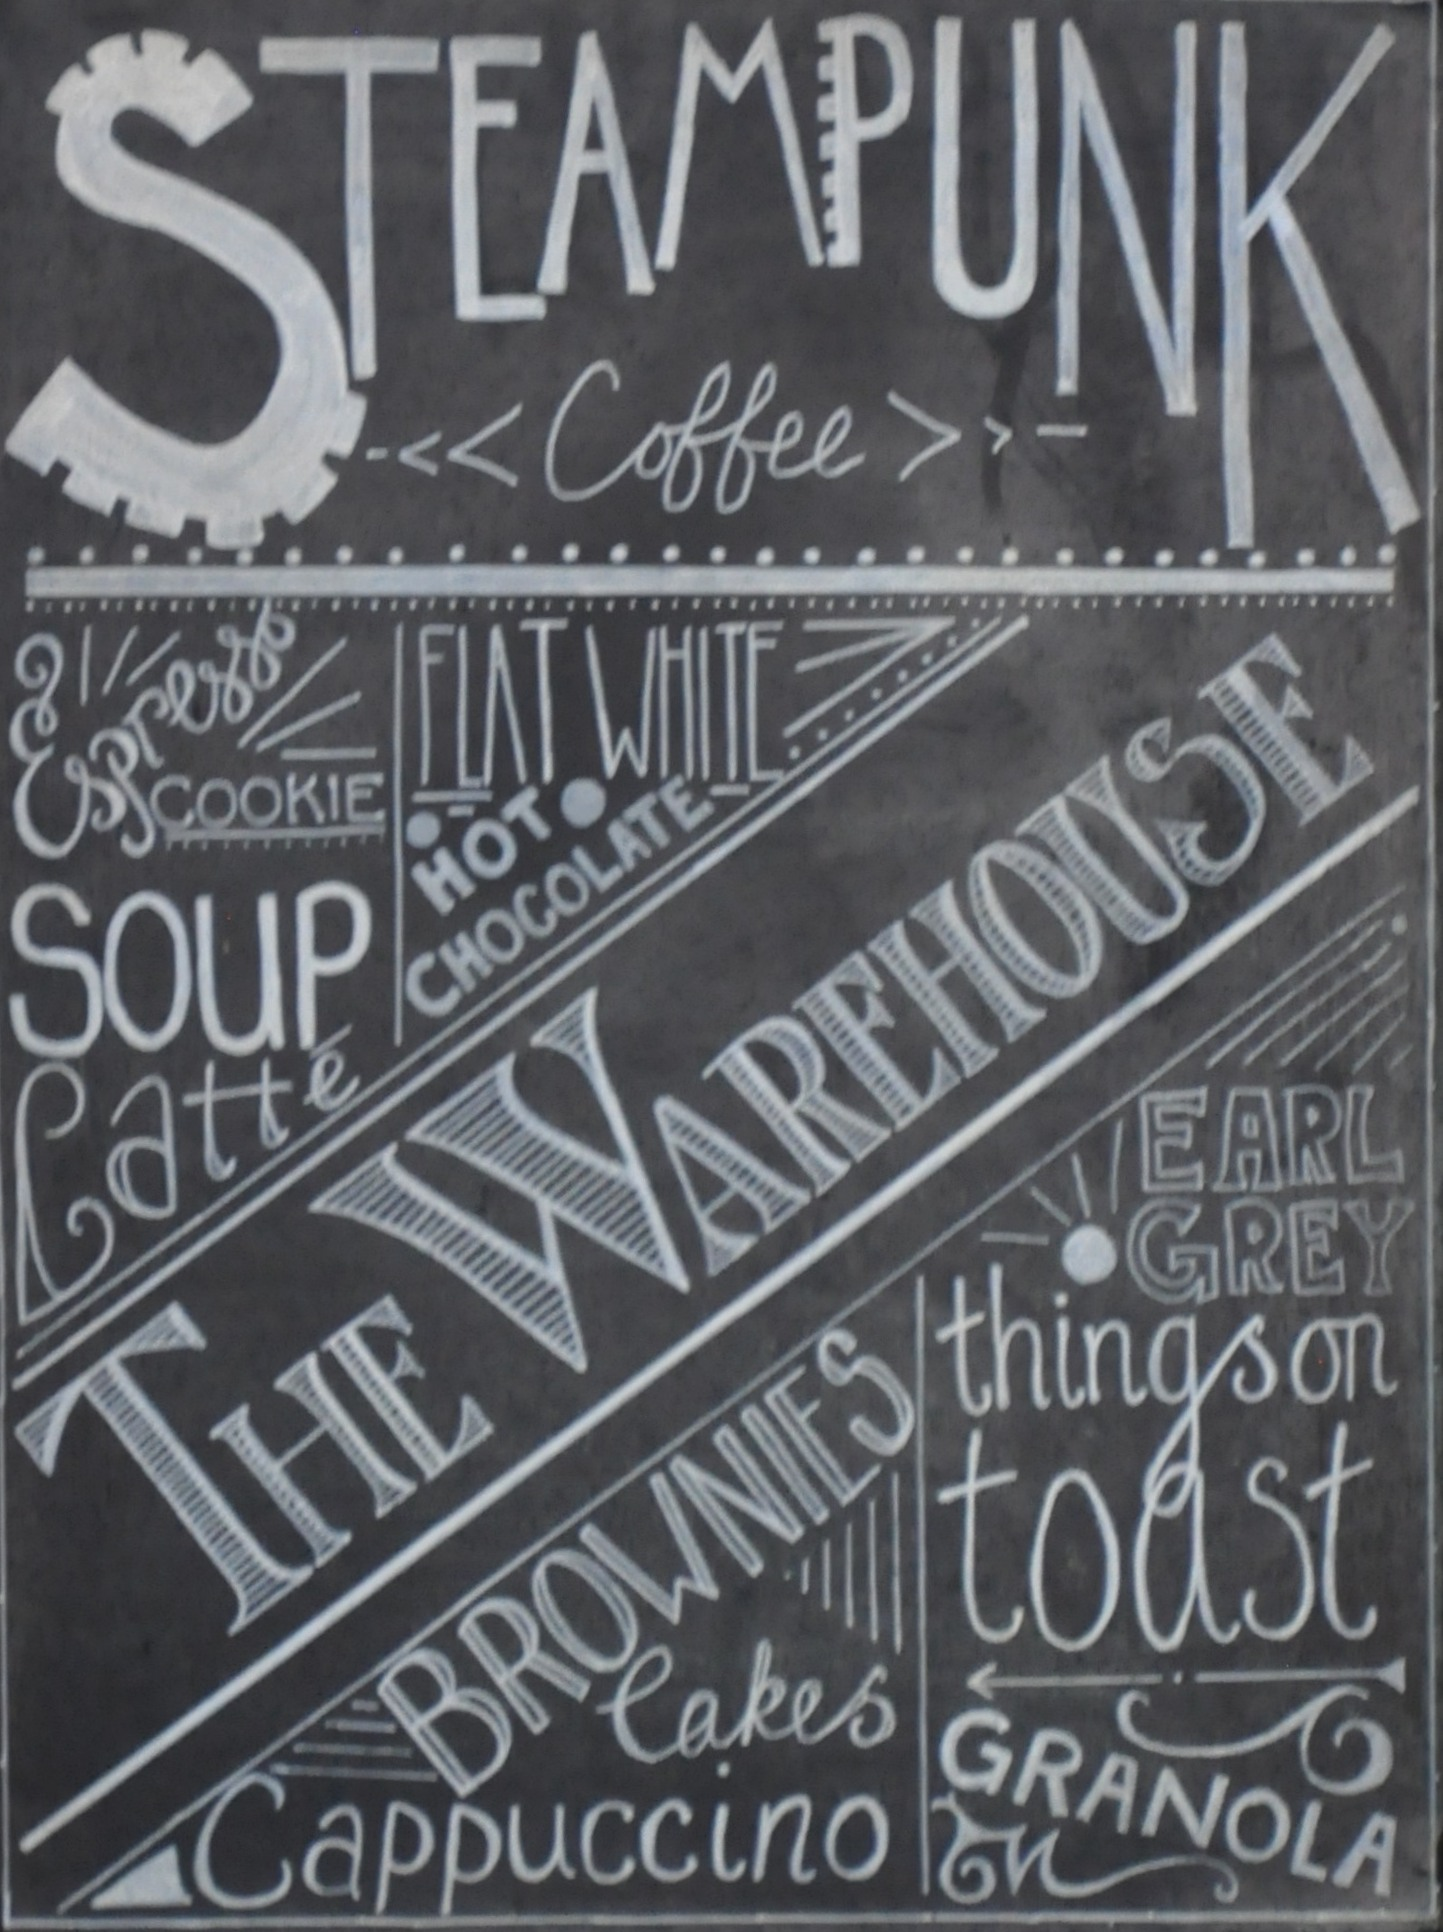 Details from one of Steampunk's white boards, listing various of its offerings.